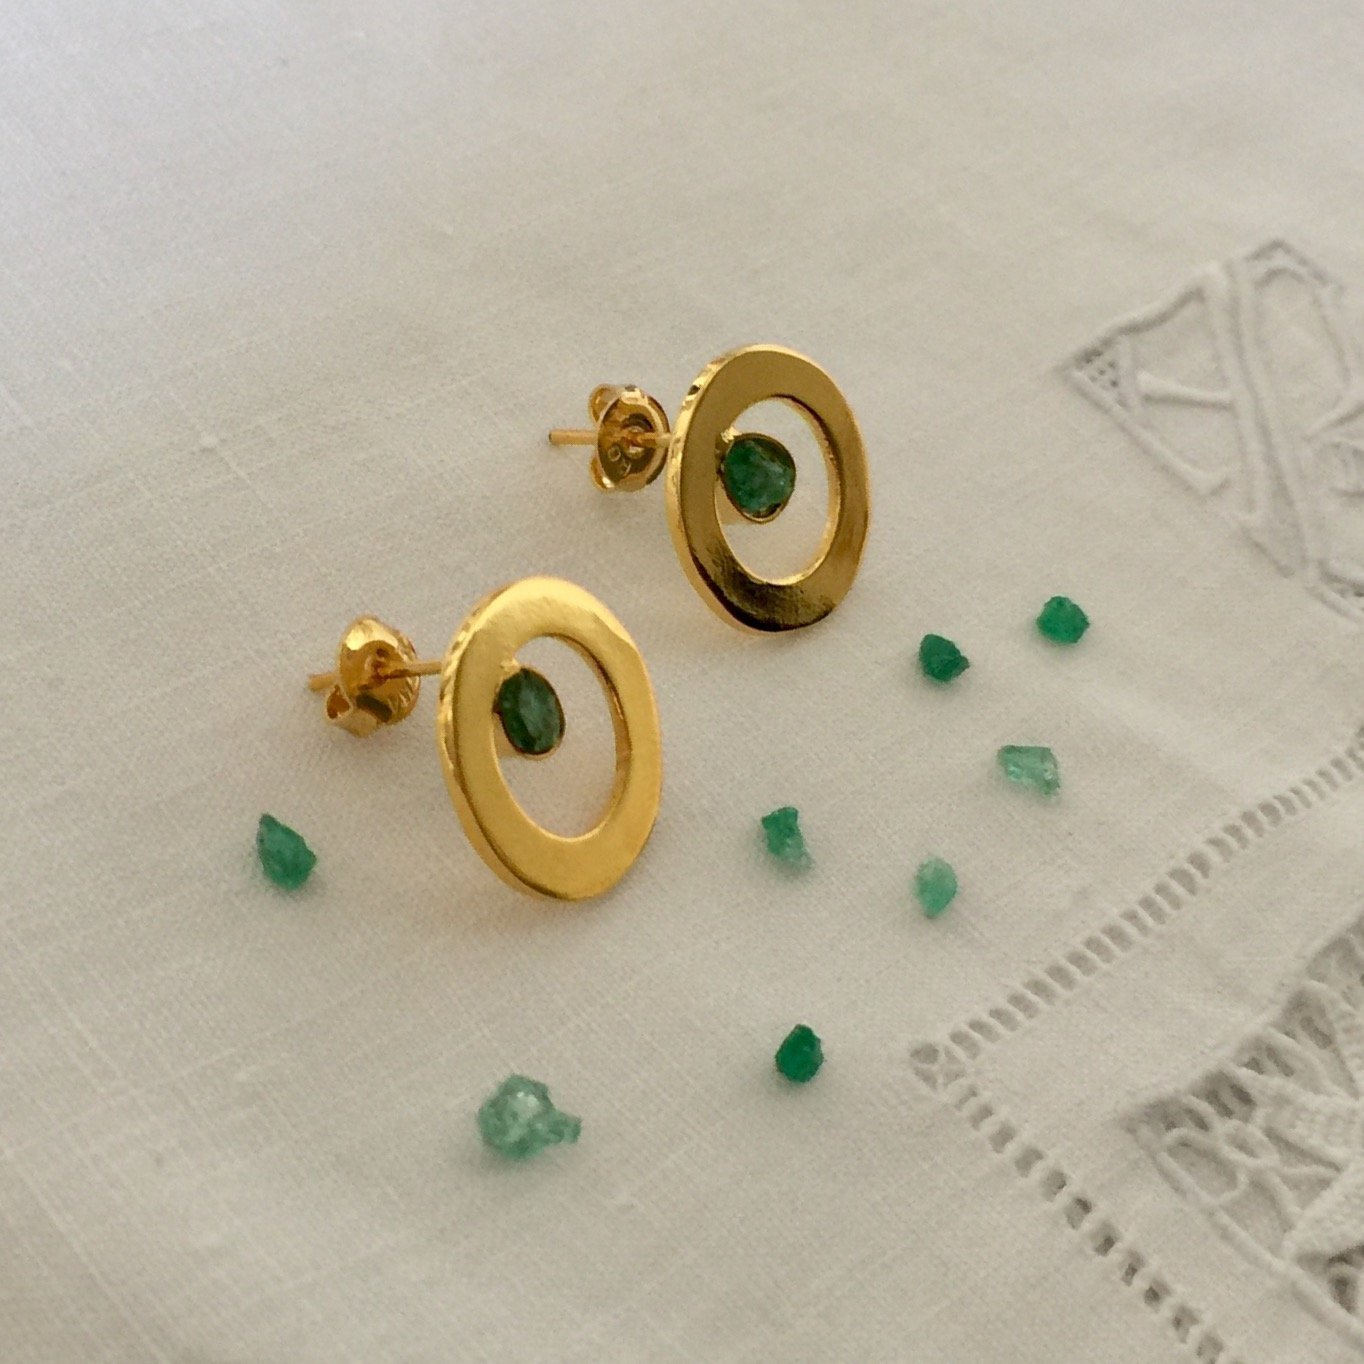 Raw Emerald Stud Earrings by D'Mundo Accesorios . Genuine Raw Colombian Emeralds. Handmade Yellow Gold Plated Circles Earrings.